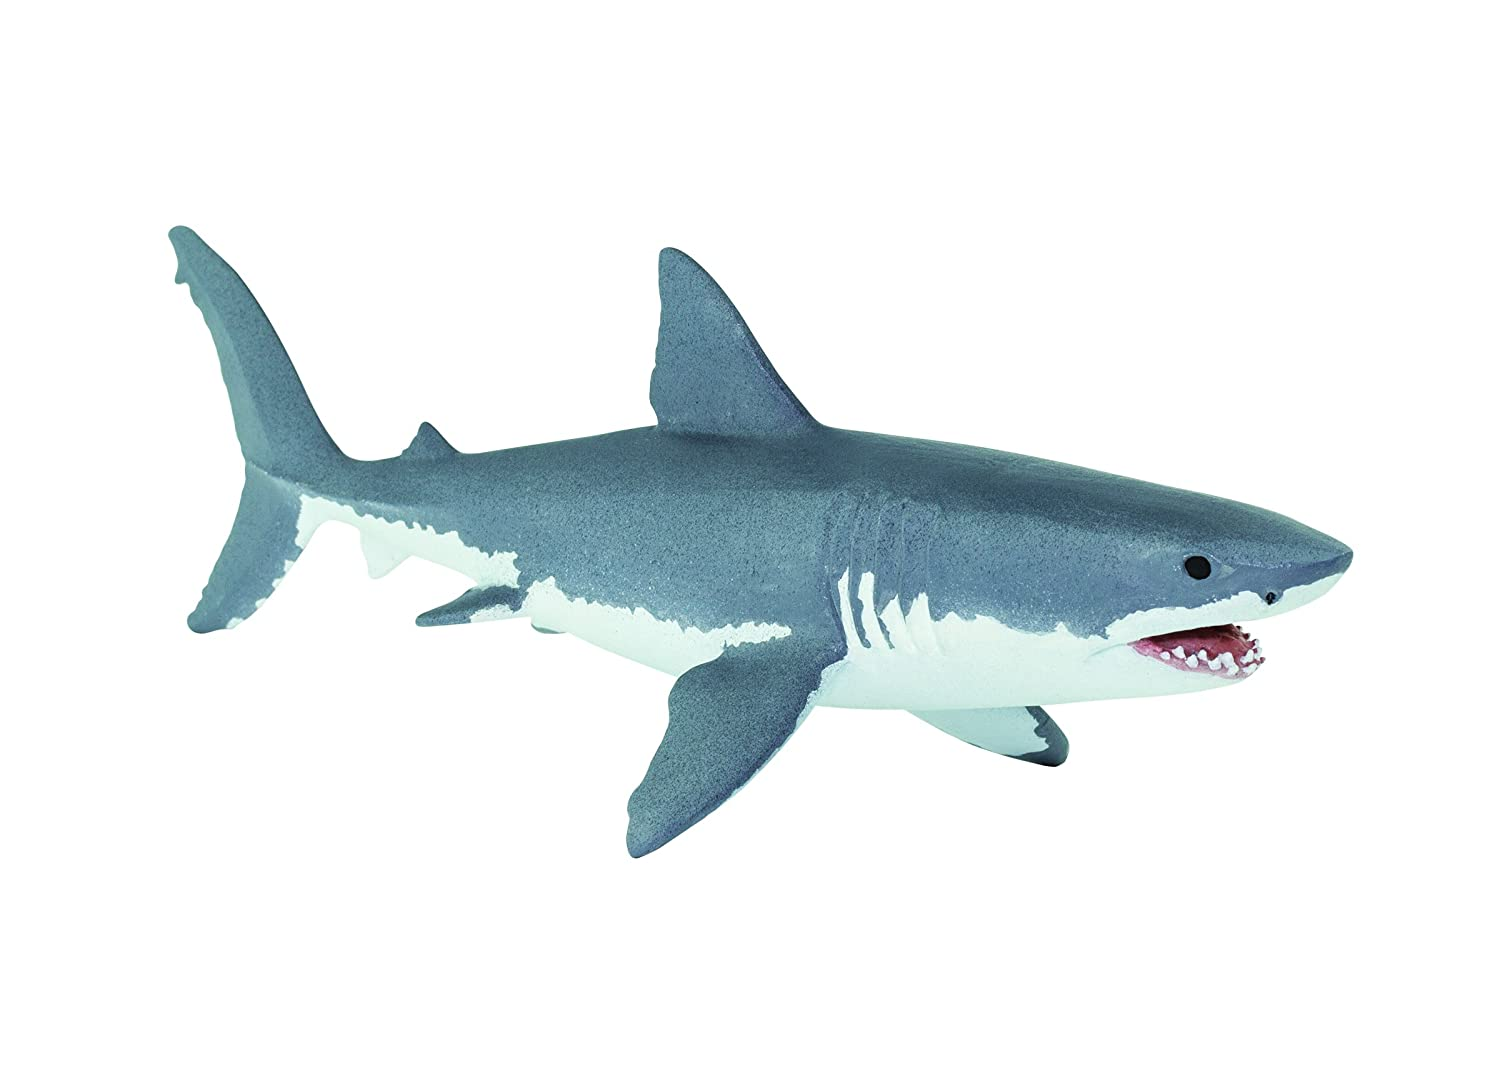 Safari Ltd. Wild Safari Sea Life Great White Shark Realistic Hand Painted Toy Figurine Model Quality Construction from Safe and BPA Free Materials for Ages 3 and Up